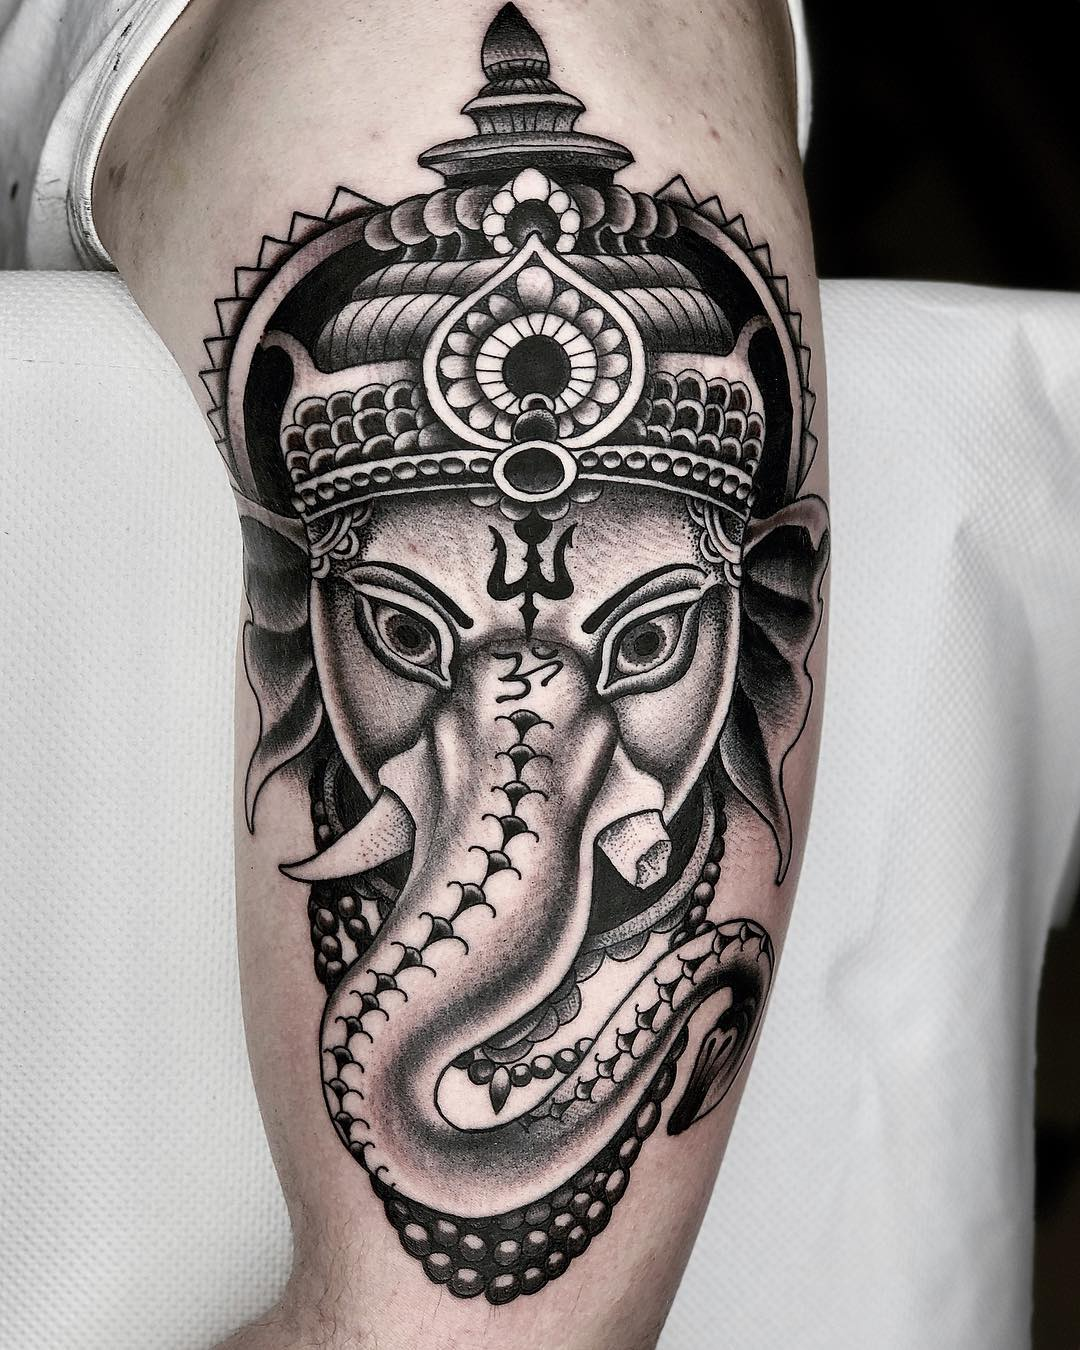 michelich black and grey tattoo artist london 07